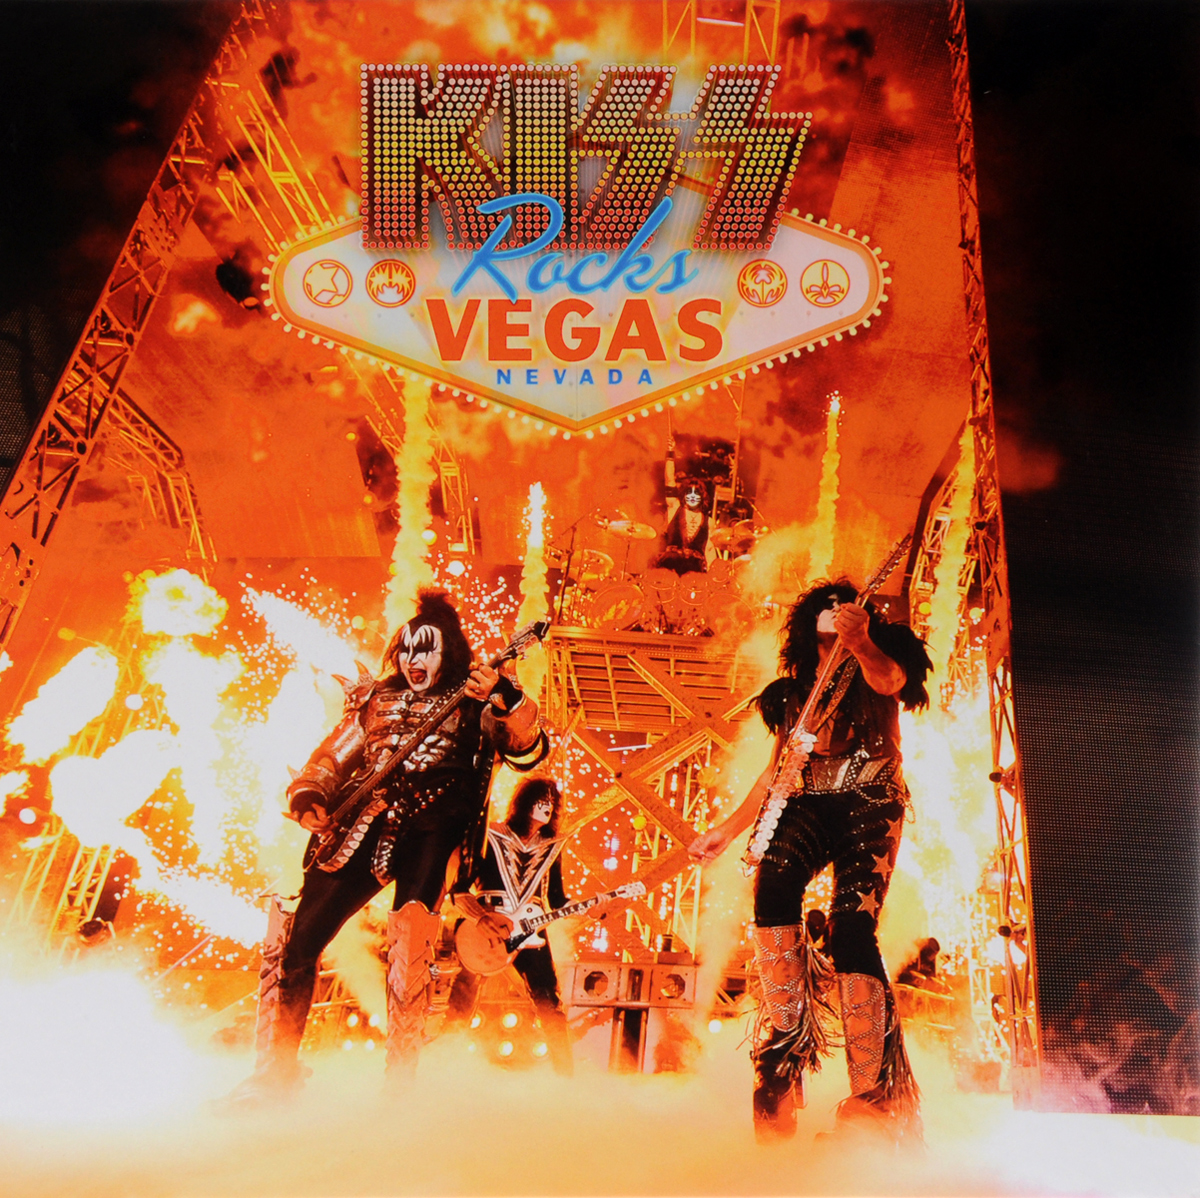 Kiss Kiss. Rocks Vegas (2 CD + DVD + Blu-Ray) аватар dvd blu ray 3d 2d